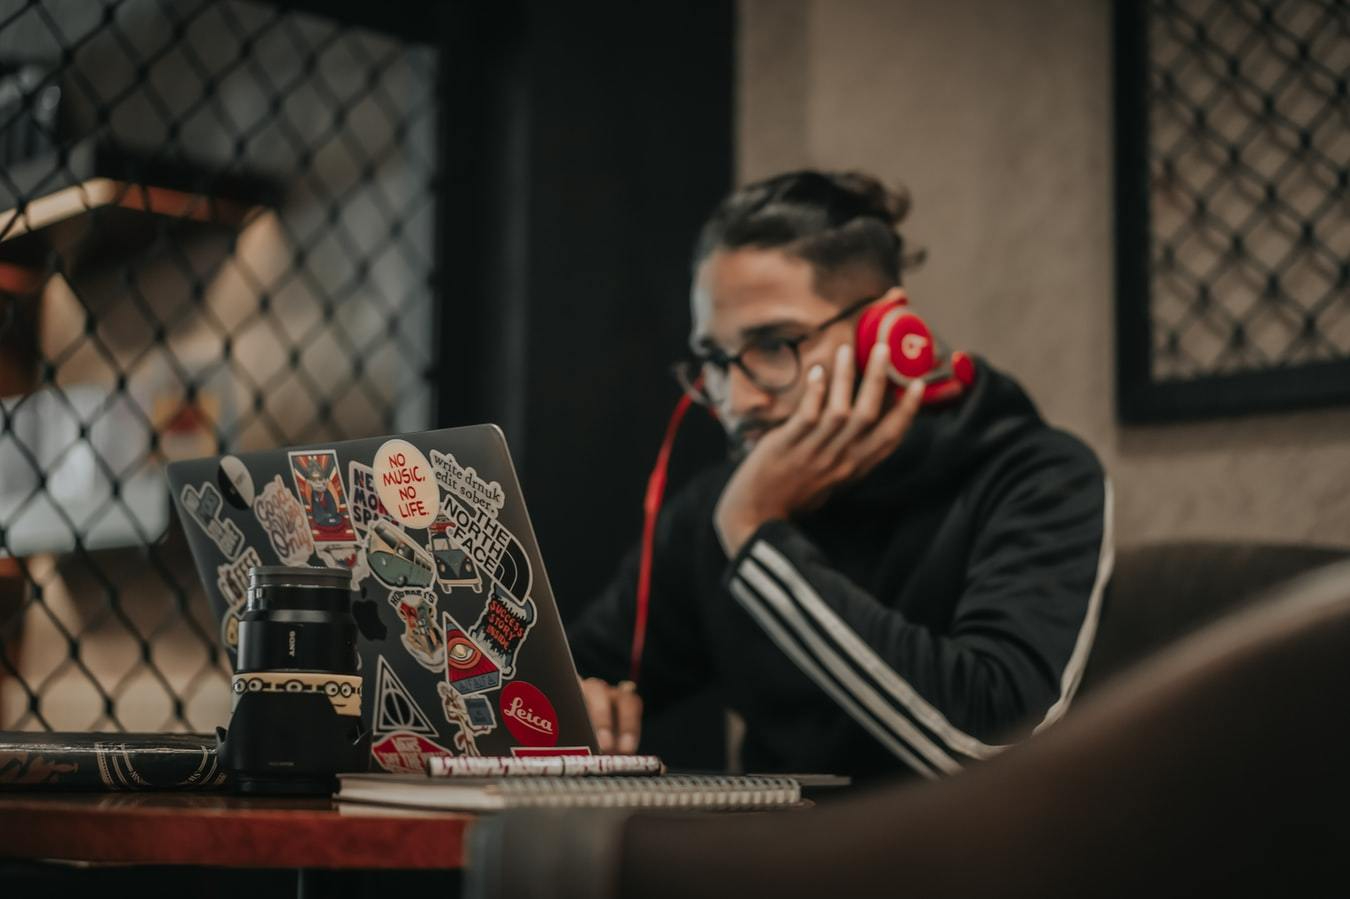 Person wearing a black hoody and red headphones works at a laptop with lots of arty stickers